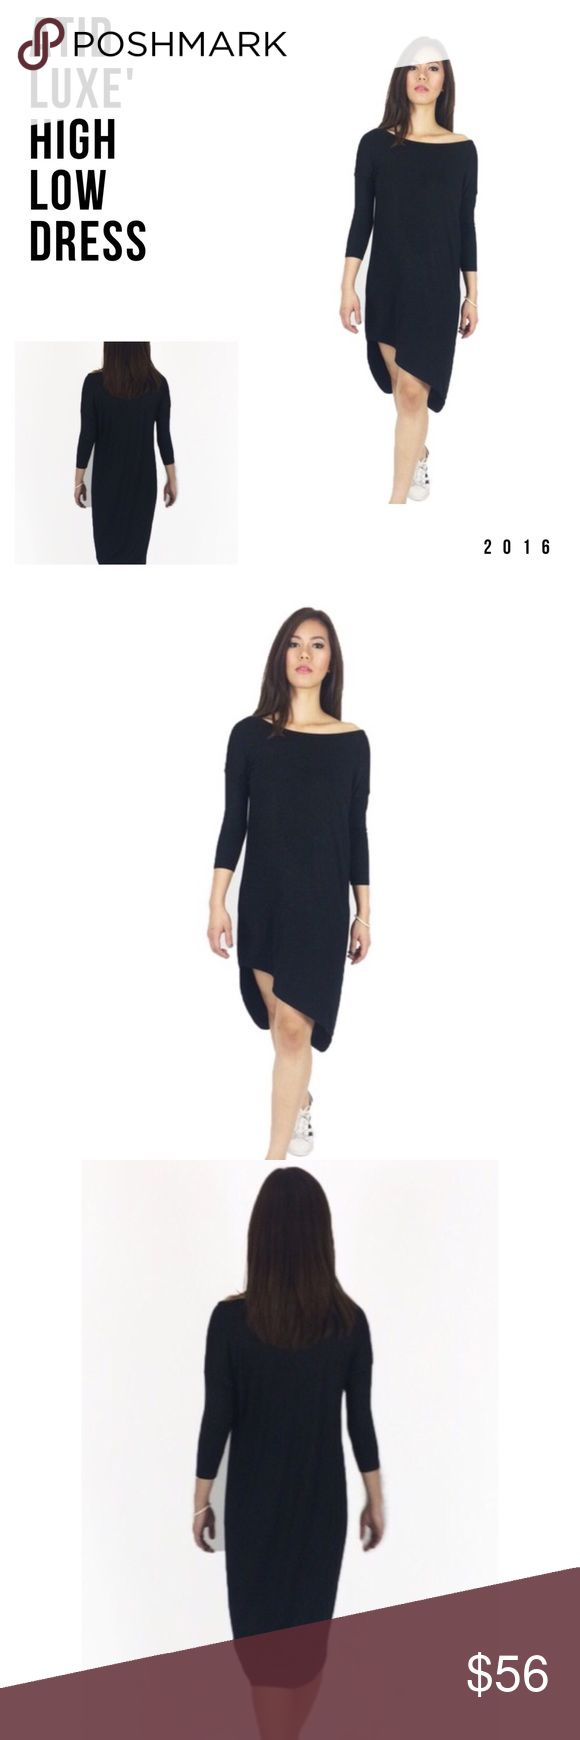 Patter Dress Luxury designer ATID high low dress in black. Material: Luxury Jersey 94%, Spandex, and Rayon blend. Gorgeous unique high low perfect fall mid length sleeve midi dress. True to size designed and manufactured in the USA. Color: black soft Jersey material. Atid Clothing Dresses Midi